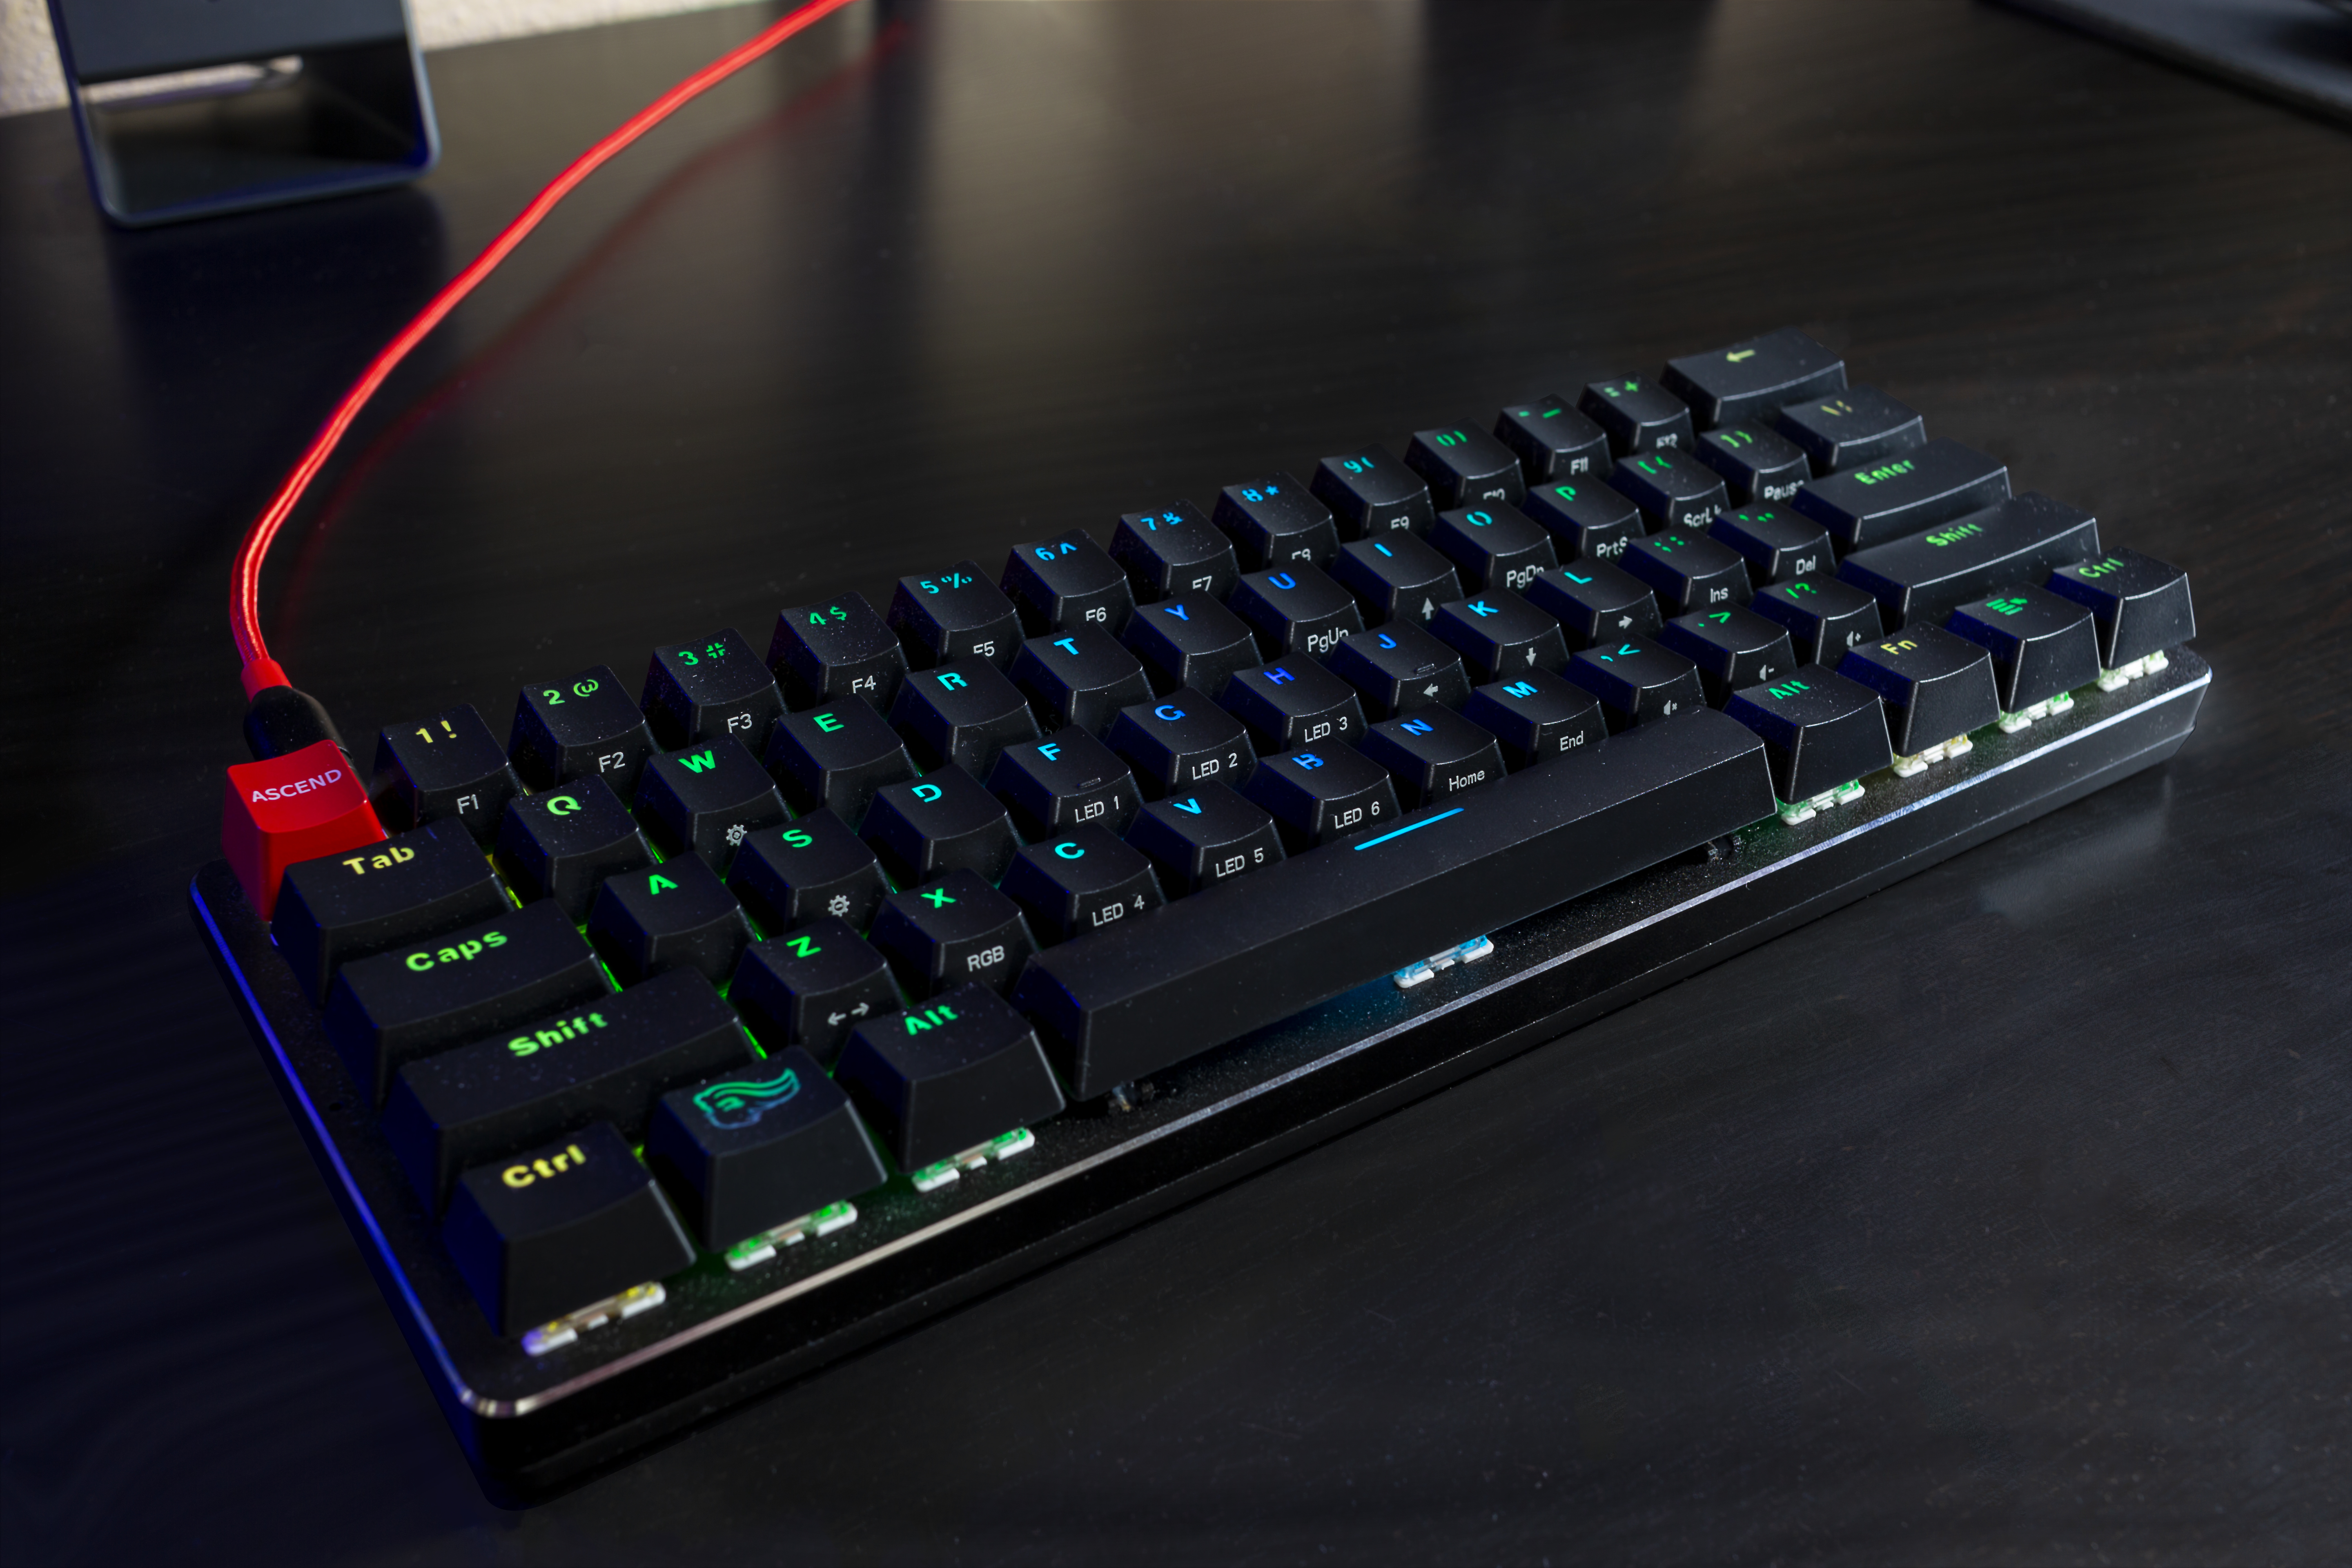 2c6eb1746af GMMK Compact 60 percent keyboard review: A great place to start ...